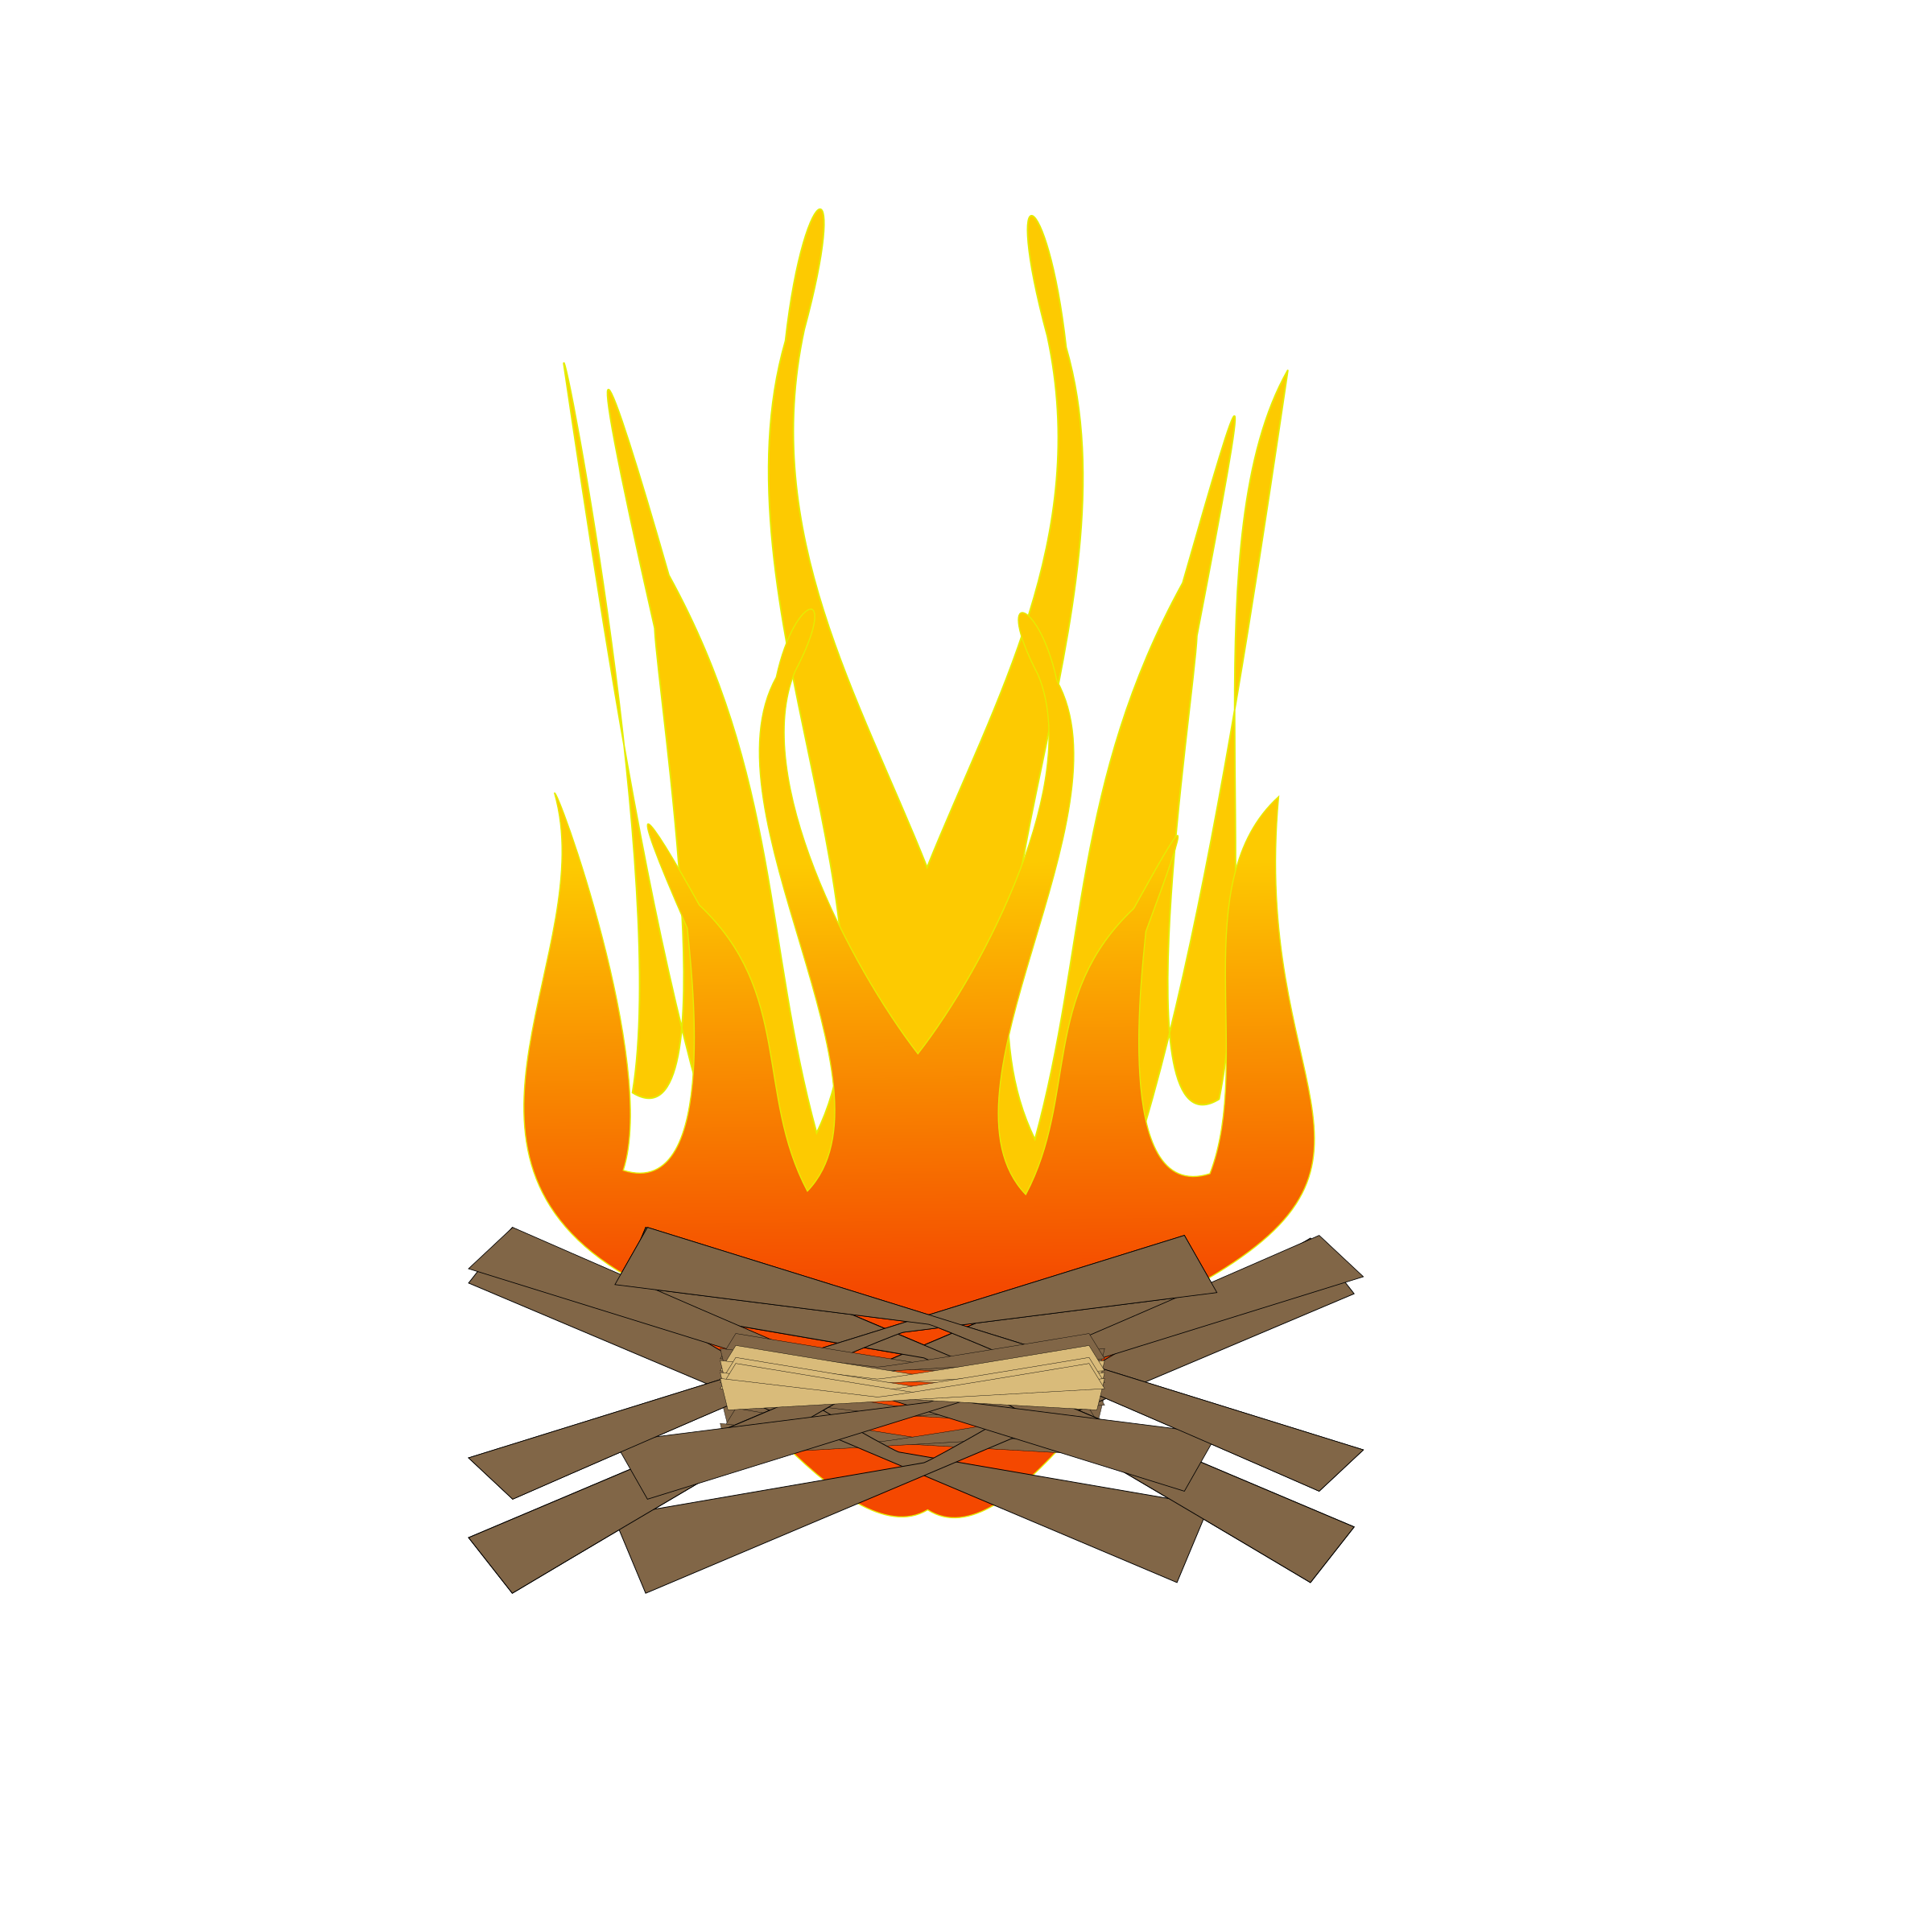 Camp Fire Clipart fire log - Free Clipart on Dumielauxepices.net vector download